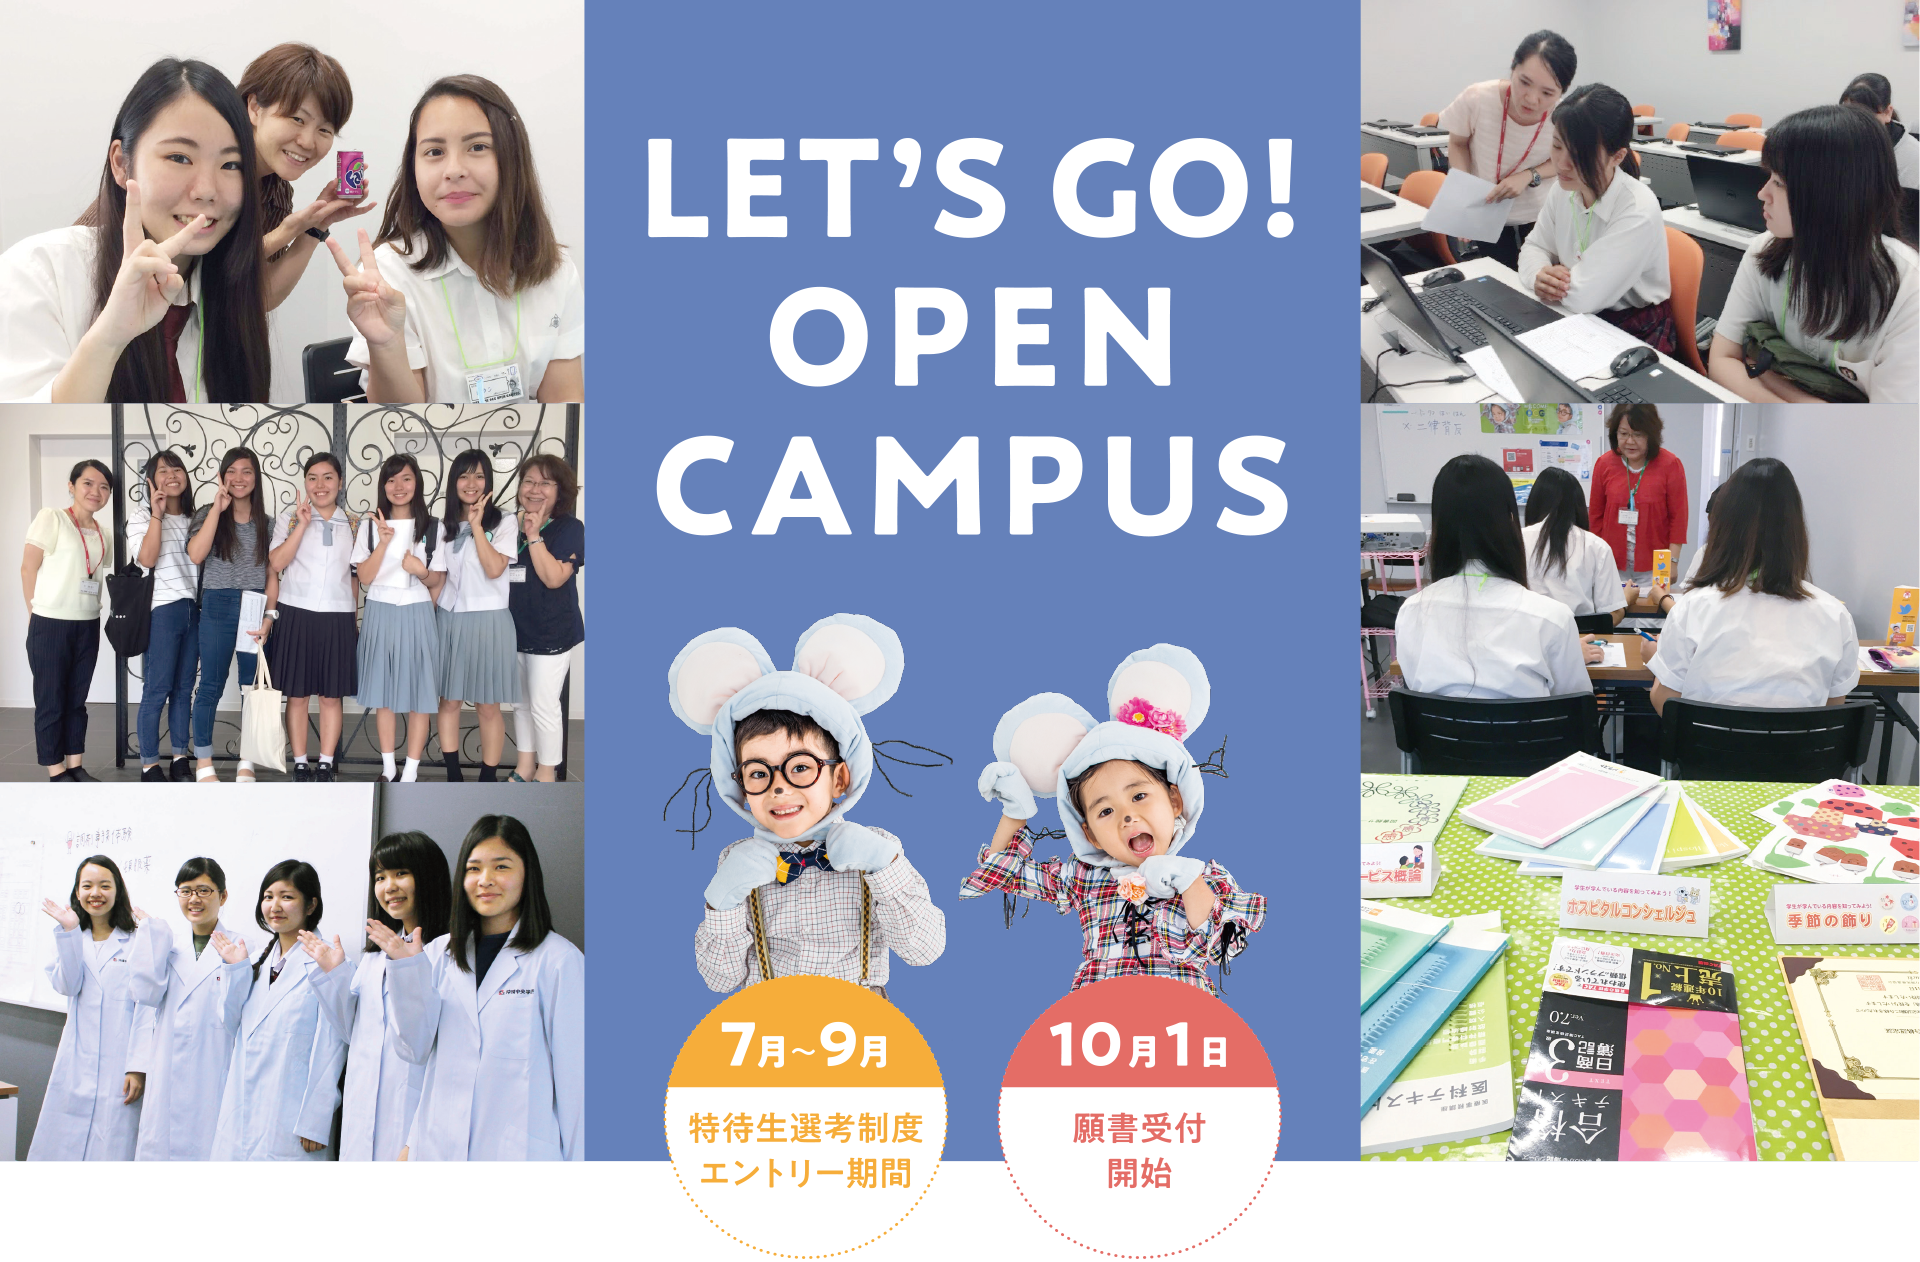 LET'S GO OPEN CAMPUS